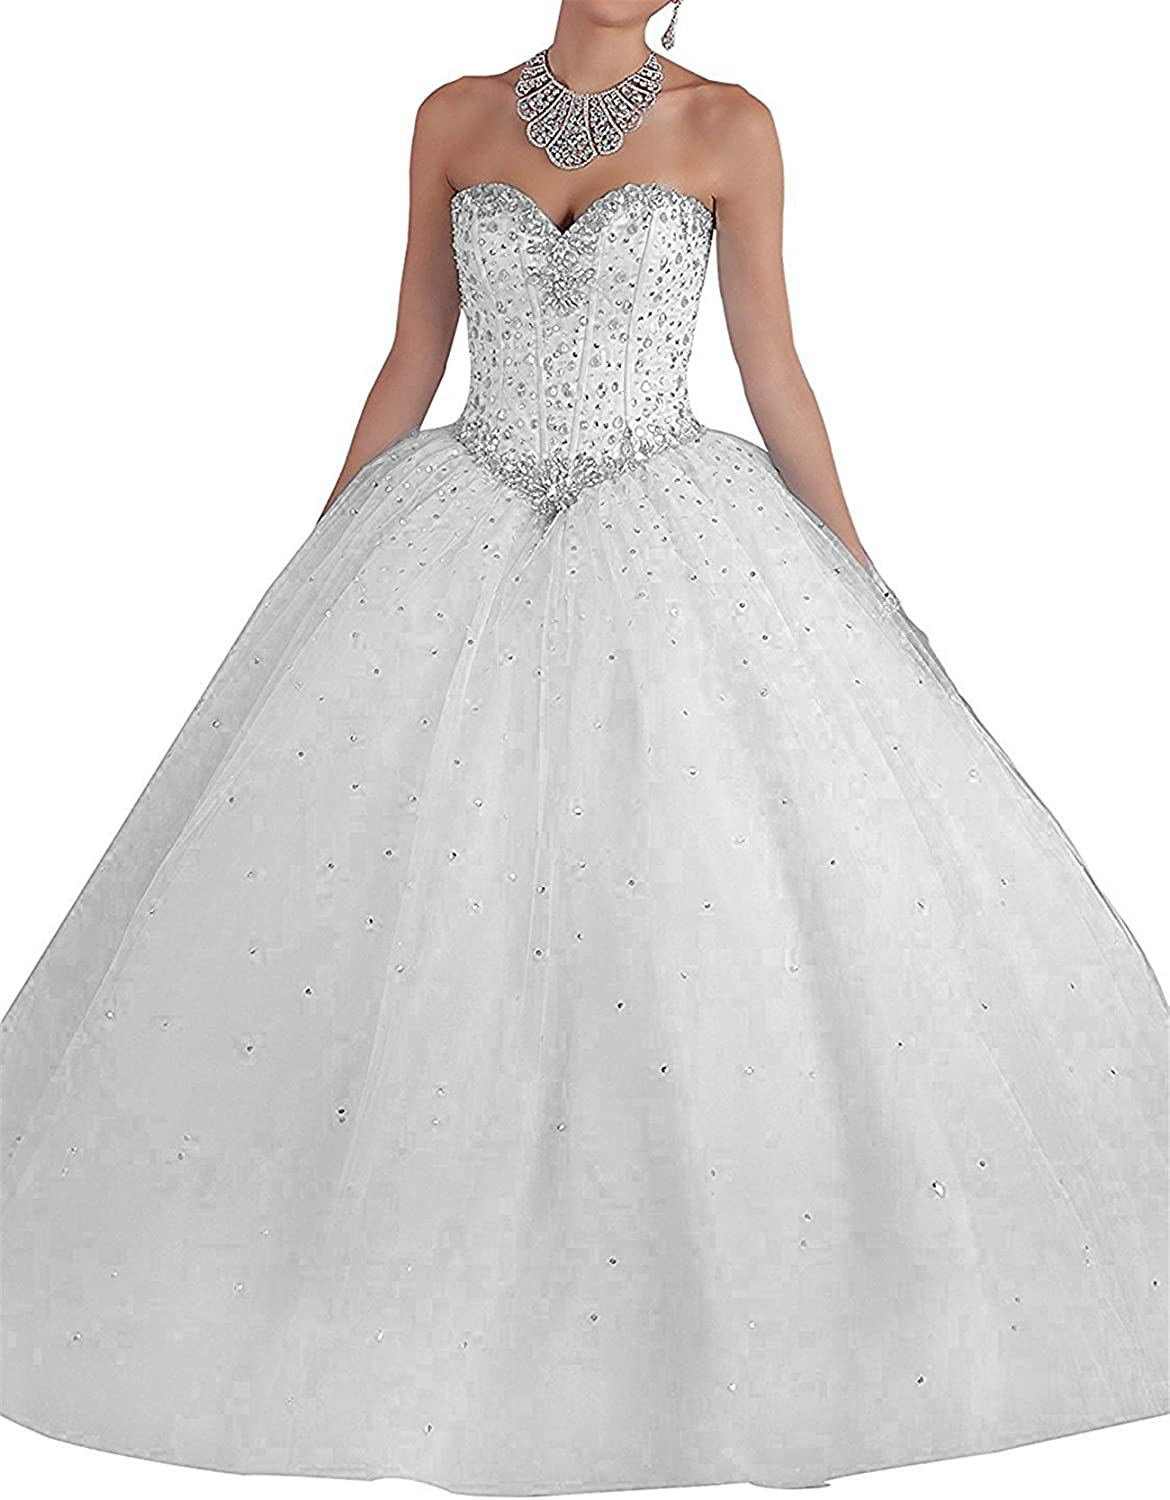 BEALEGAN Lady Women's Crystal Quinceanera Dresses Tulle Prom Party Gown